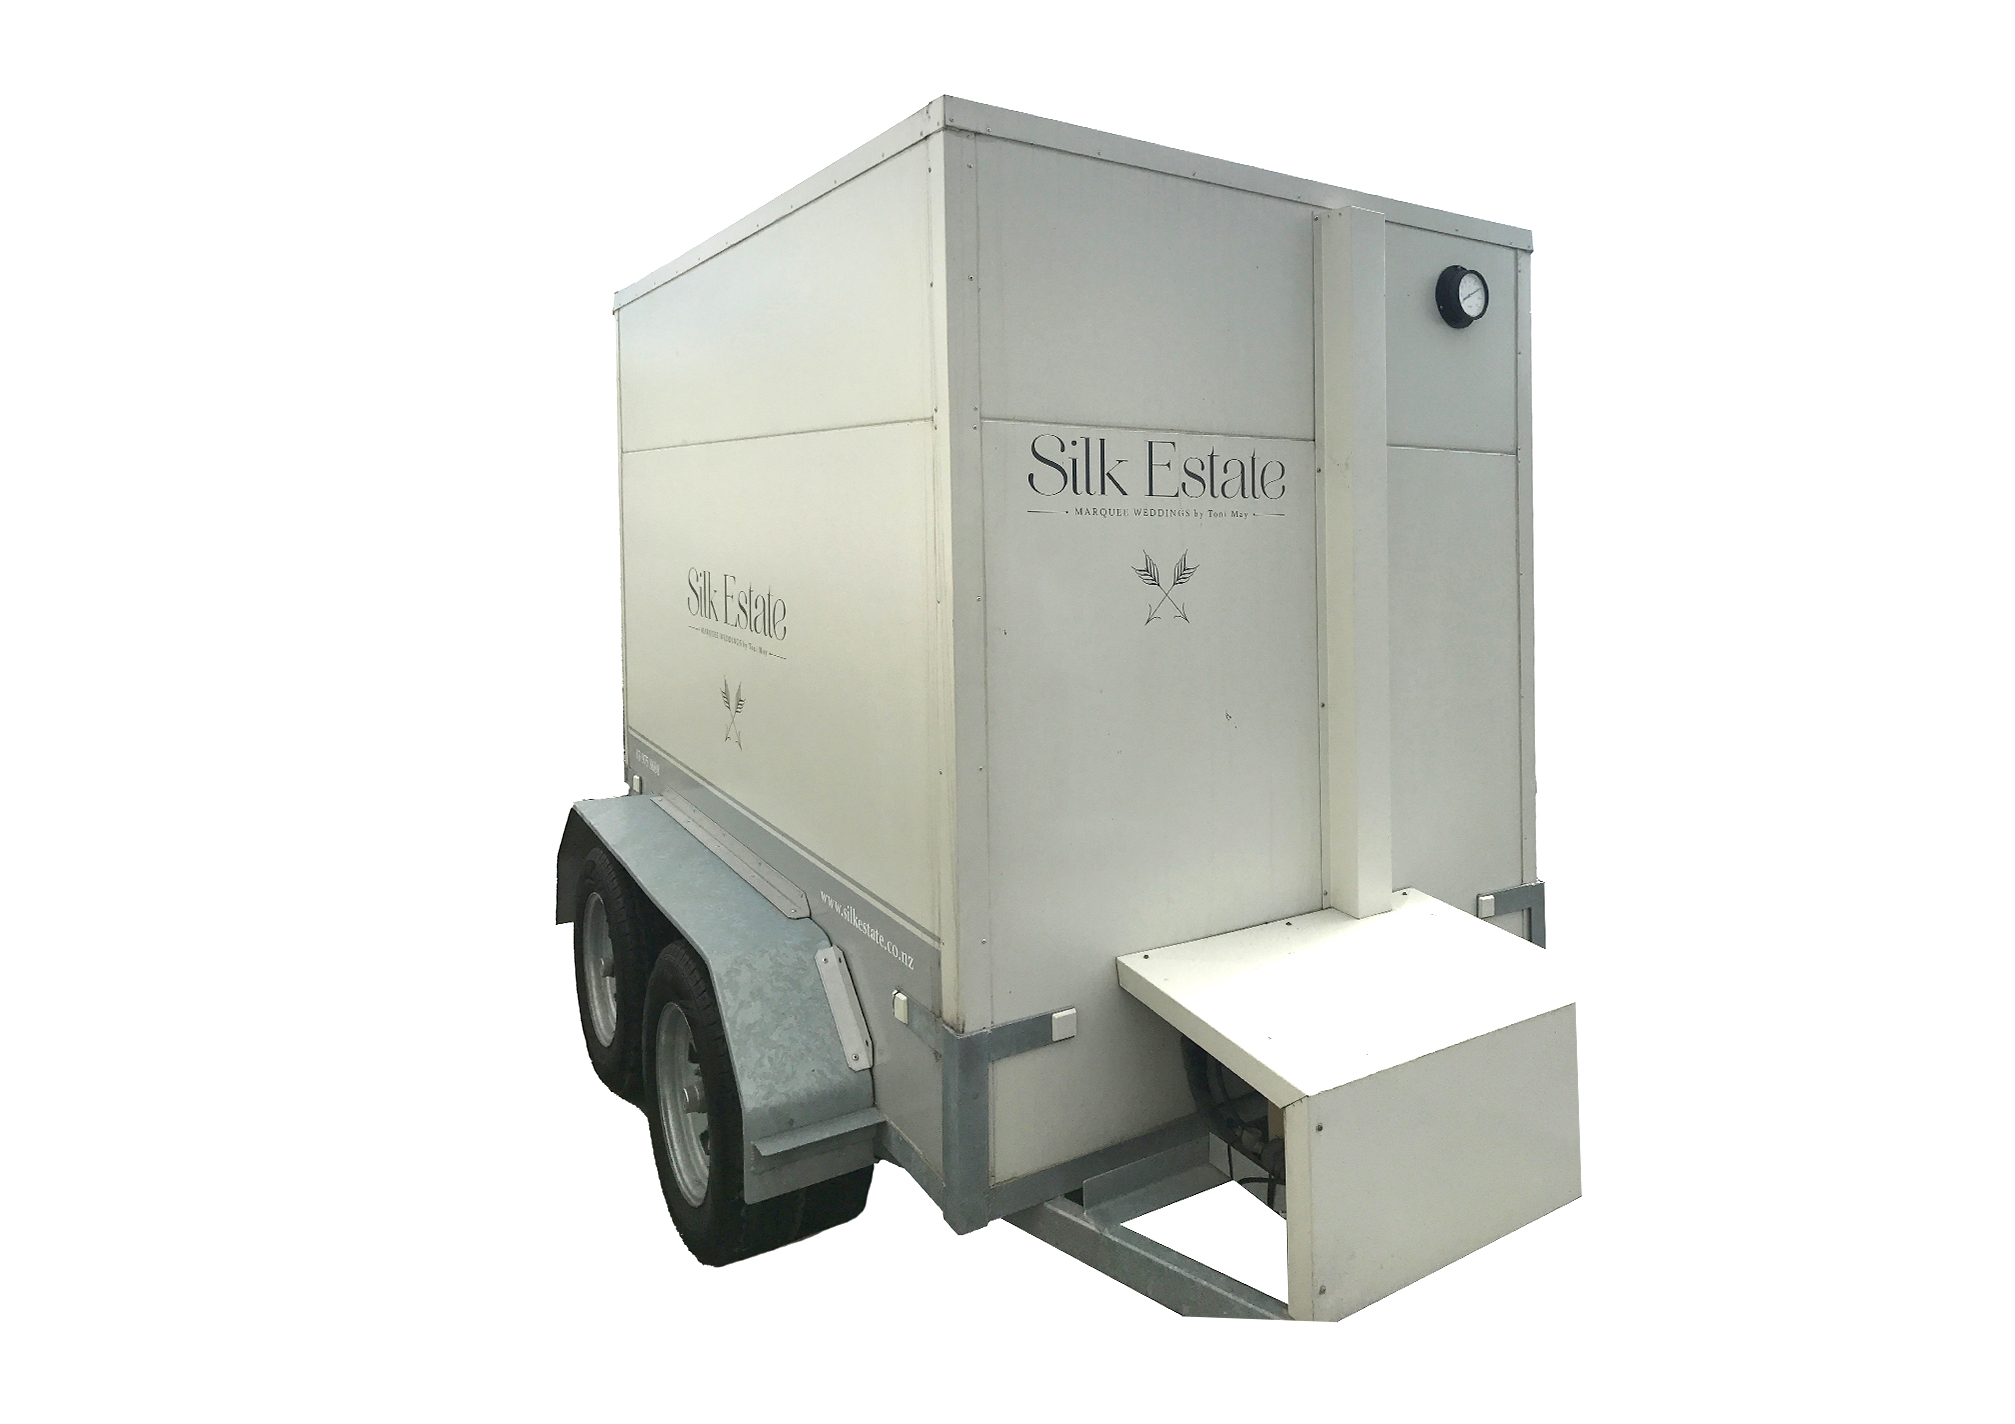 silk-estate-marquee-weddings-and-events-styling-and-hire-trailers-chiller-trailer-2